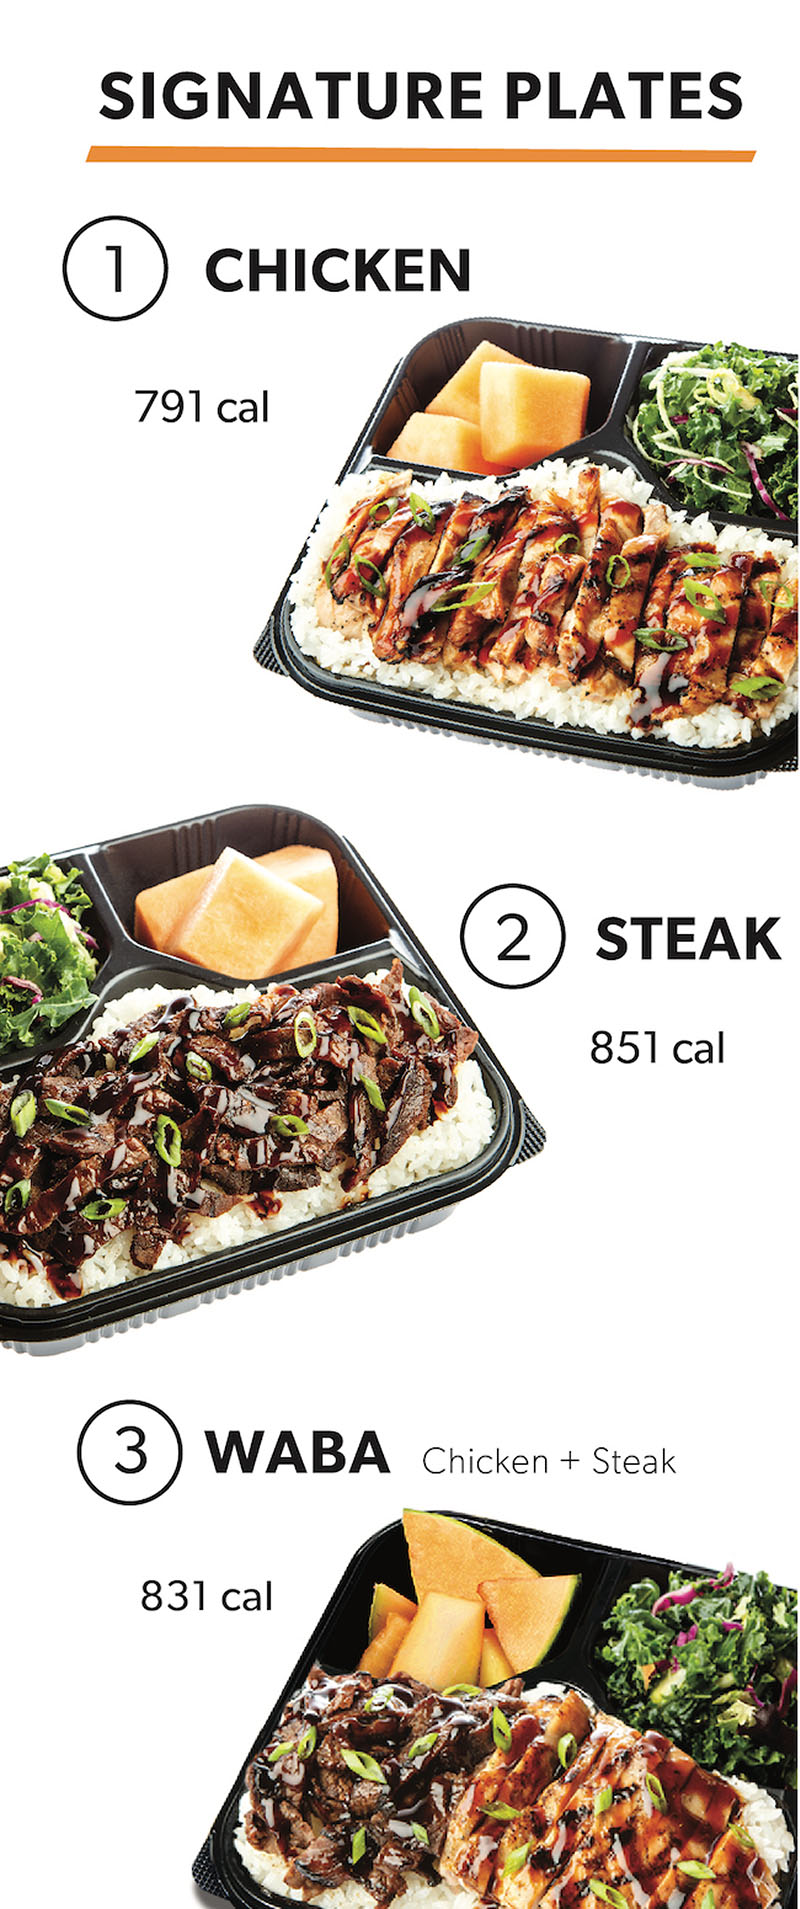 Waba grill coupons los angeles